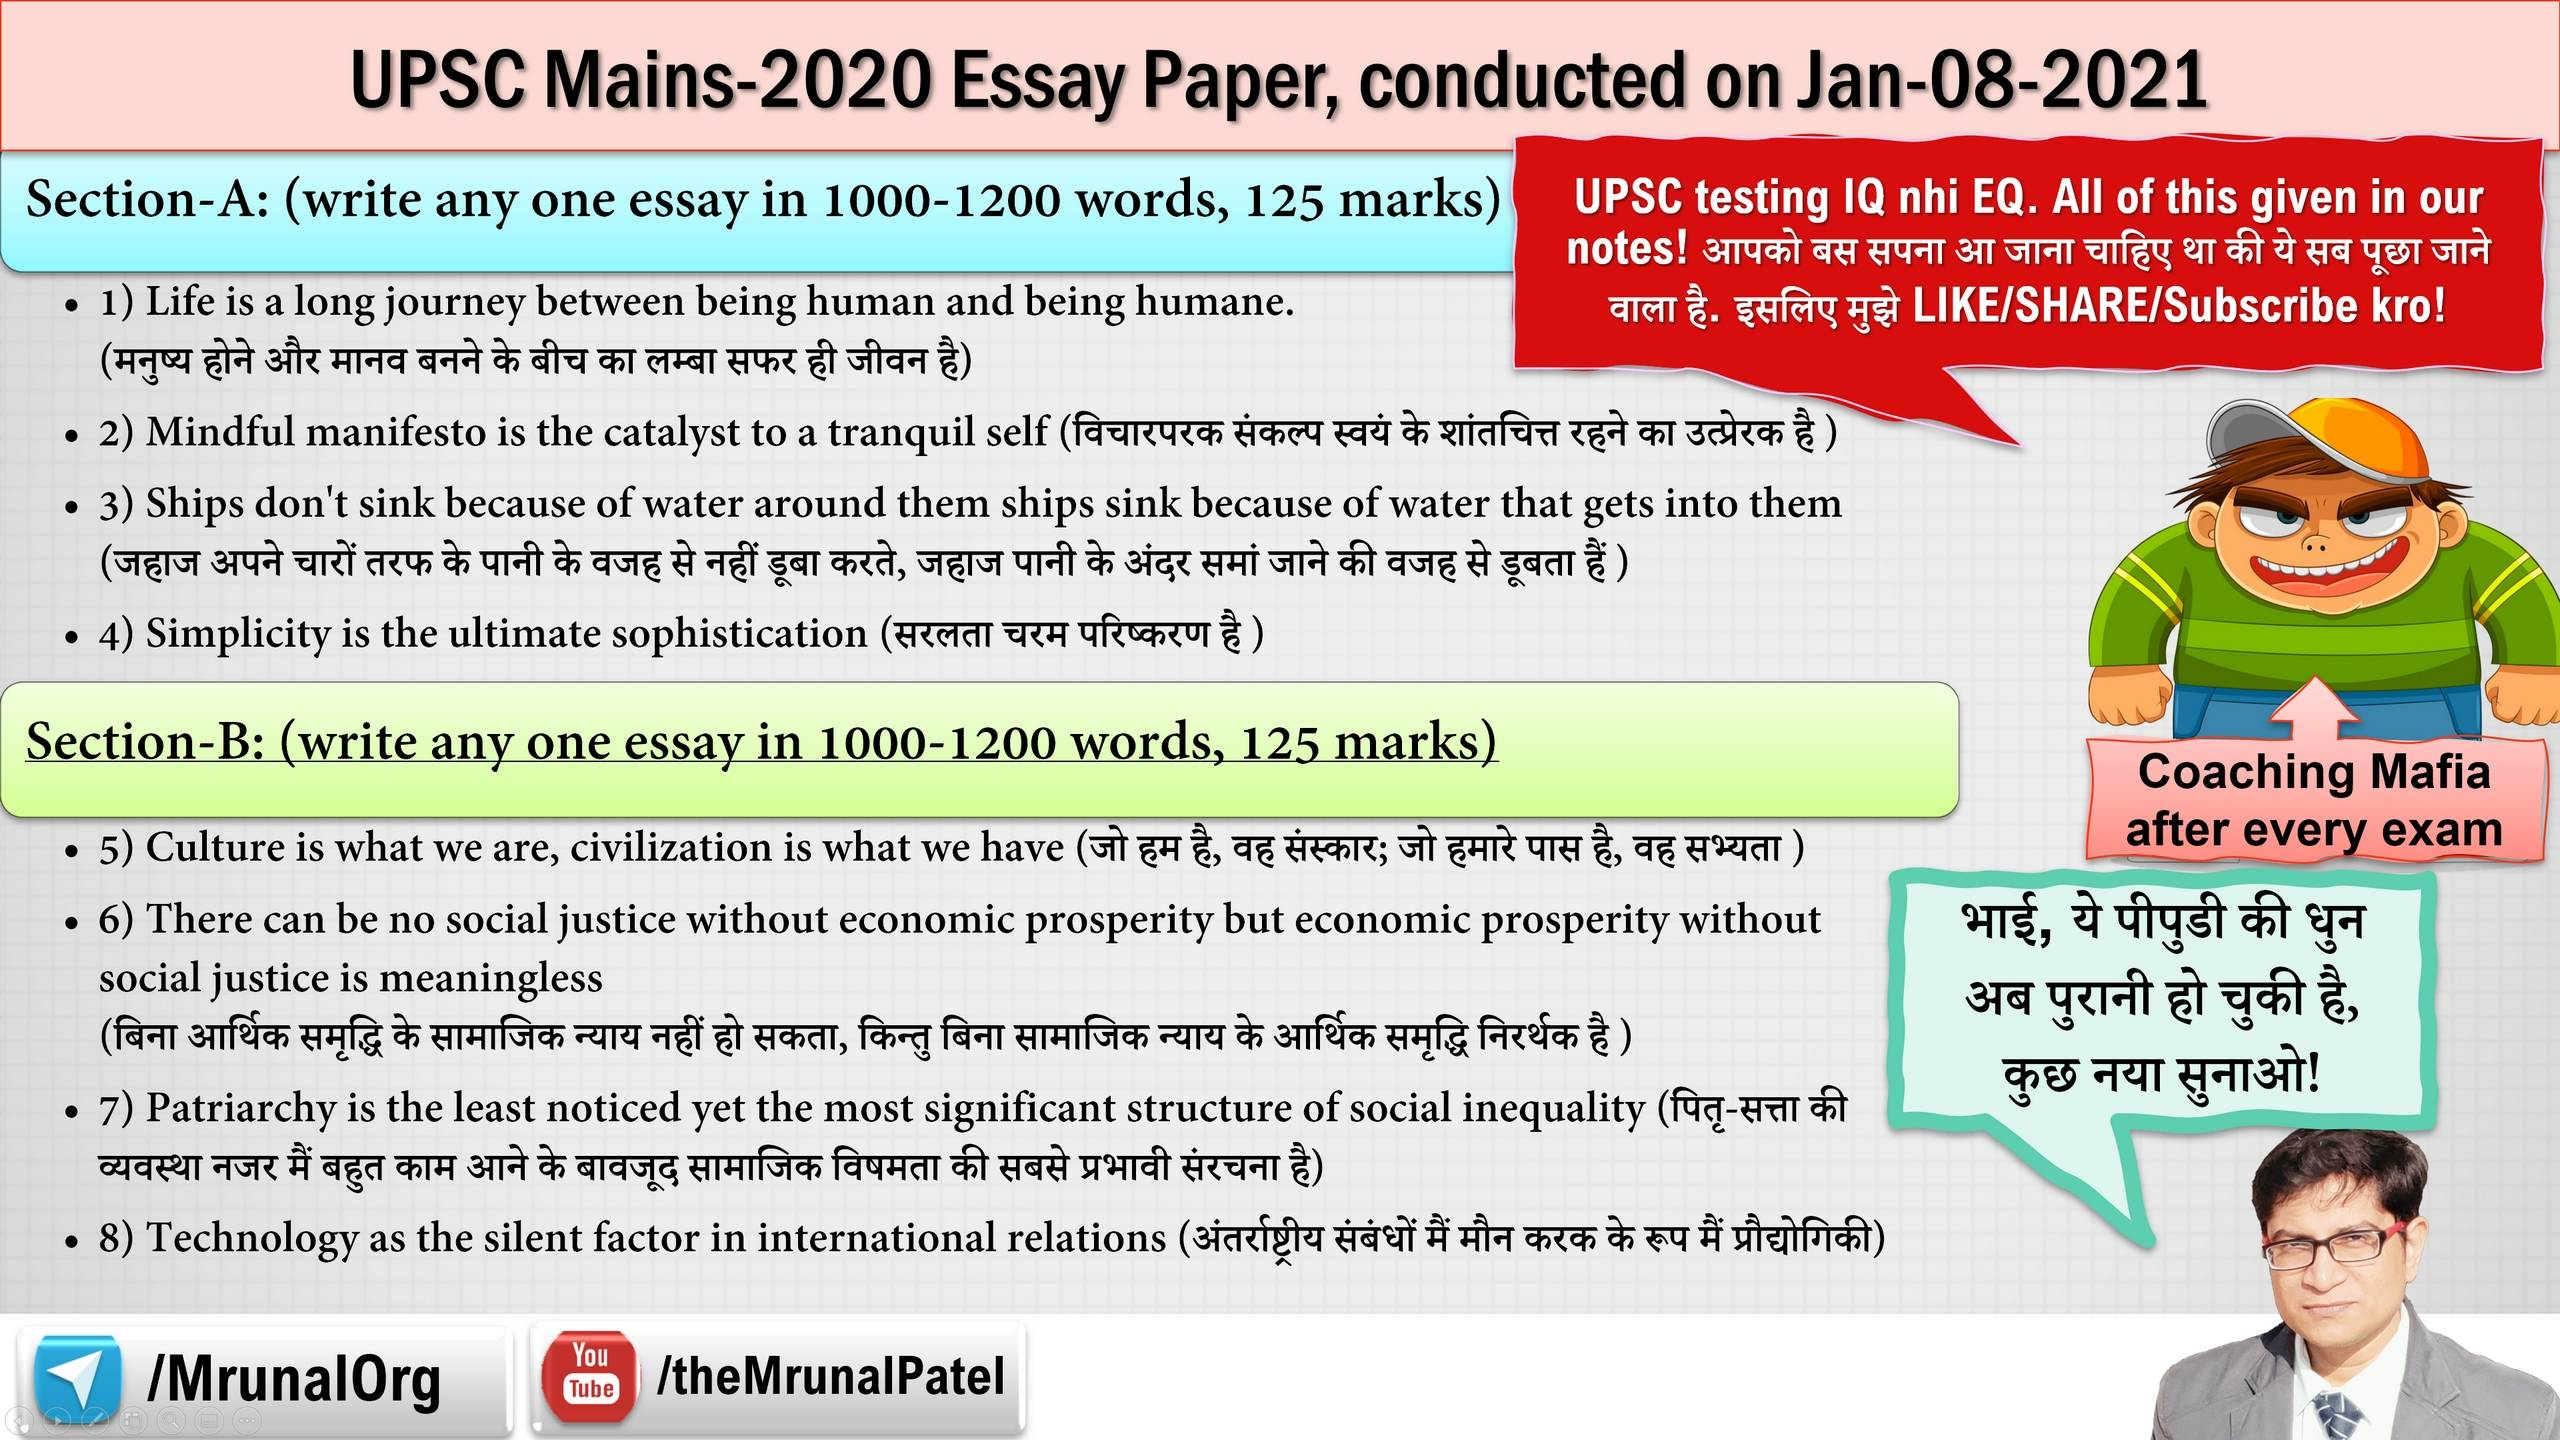 [Download] UPSC Mains-2020 Essay Paper, Including Topicwise last 28 YEARS Essay Question Papers (1993-2020)